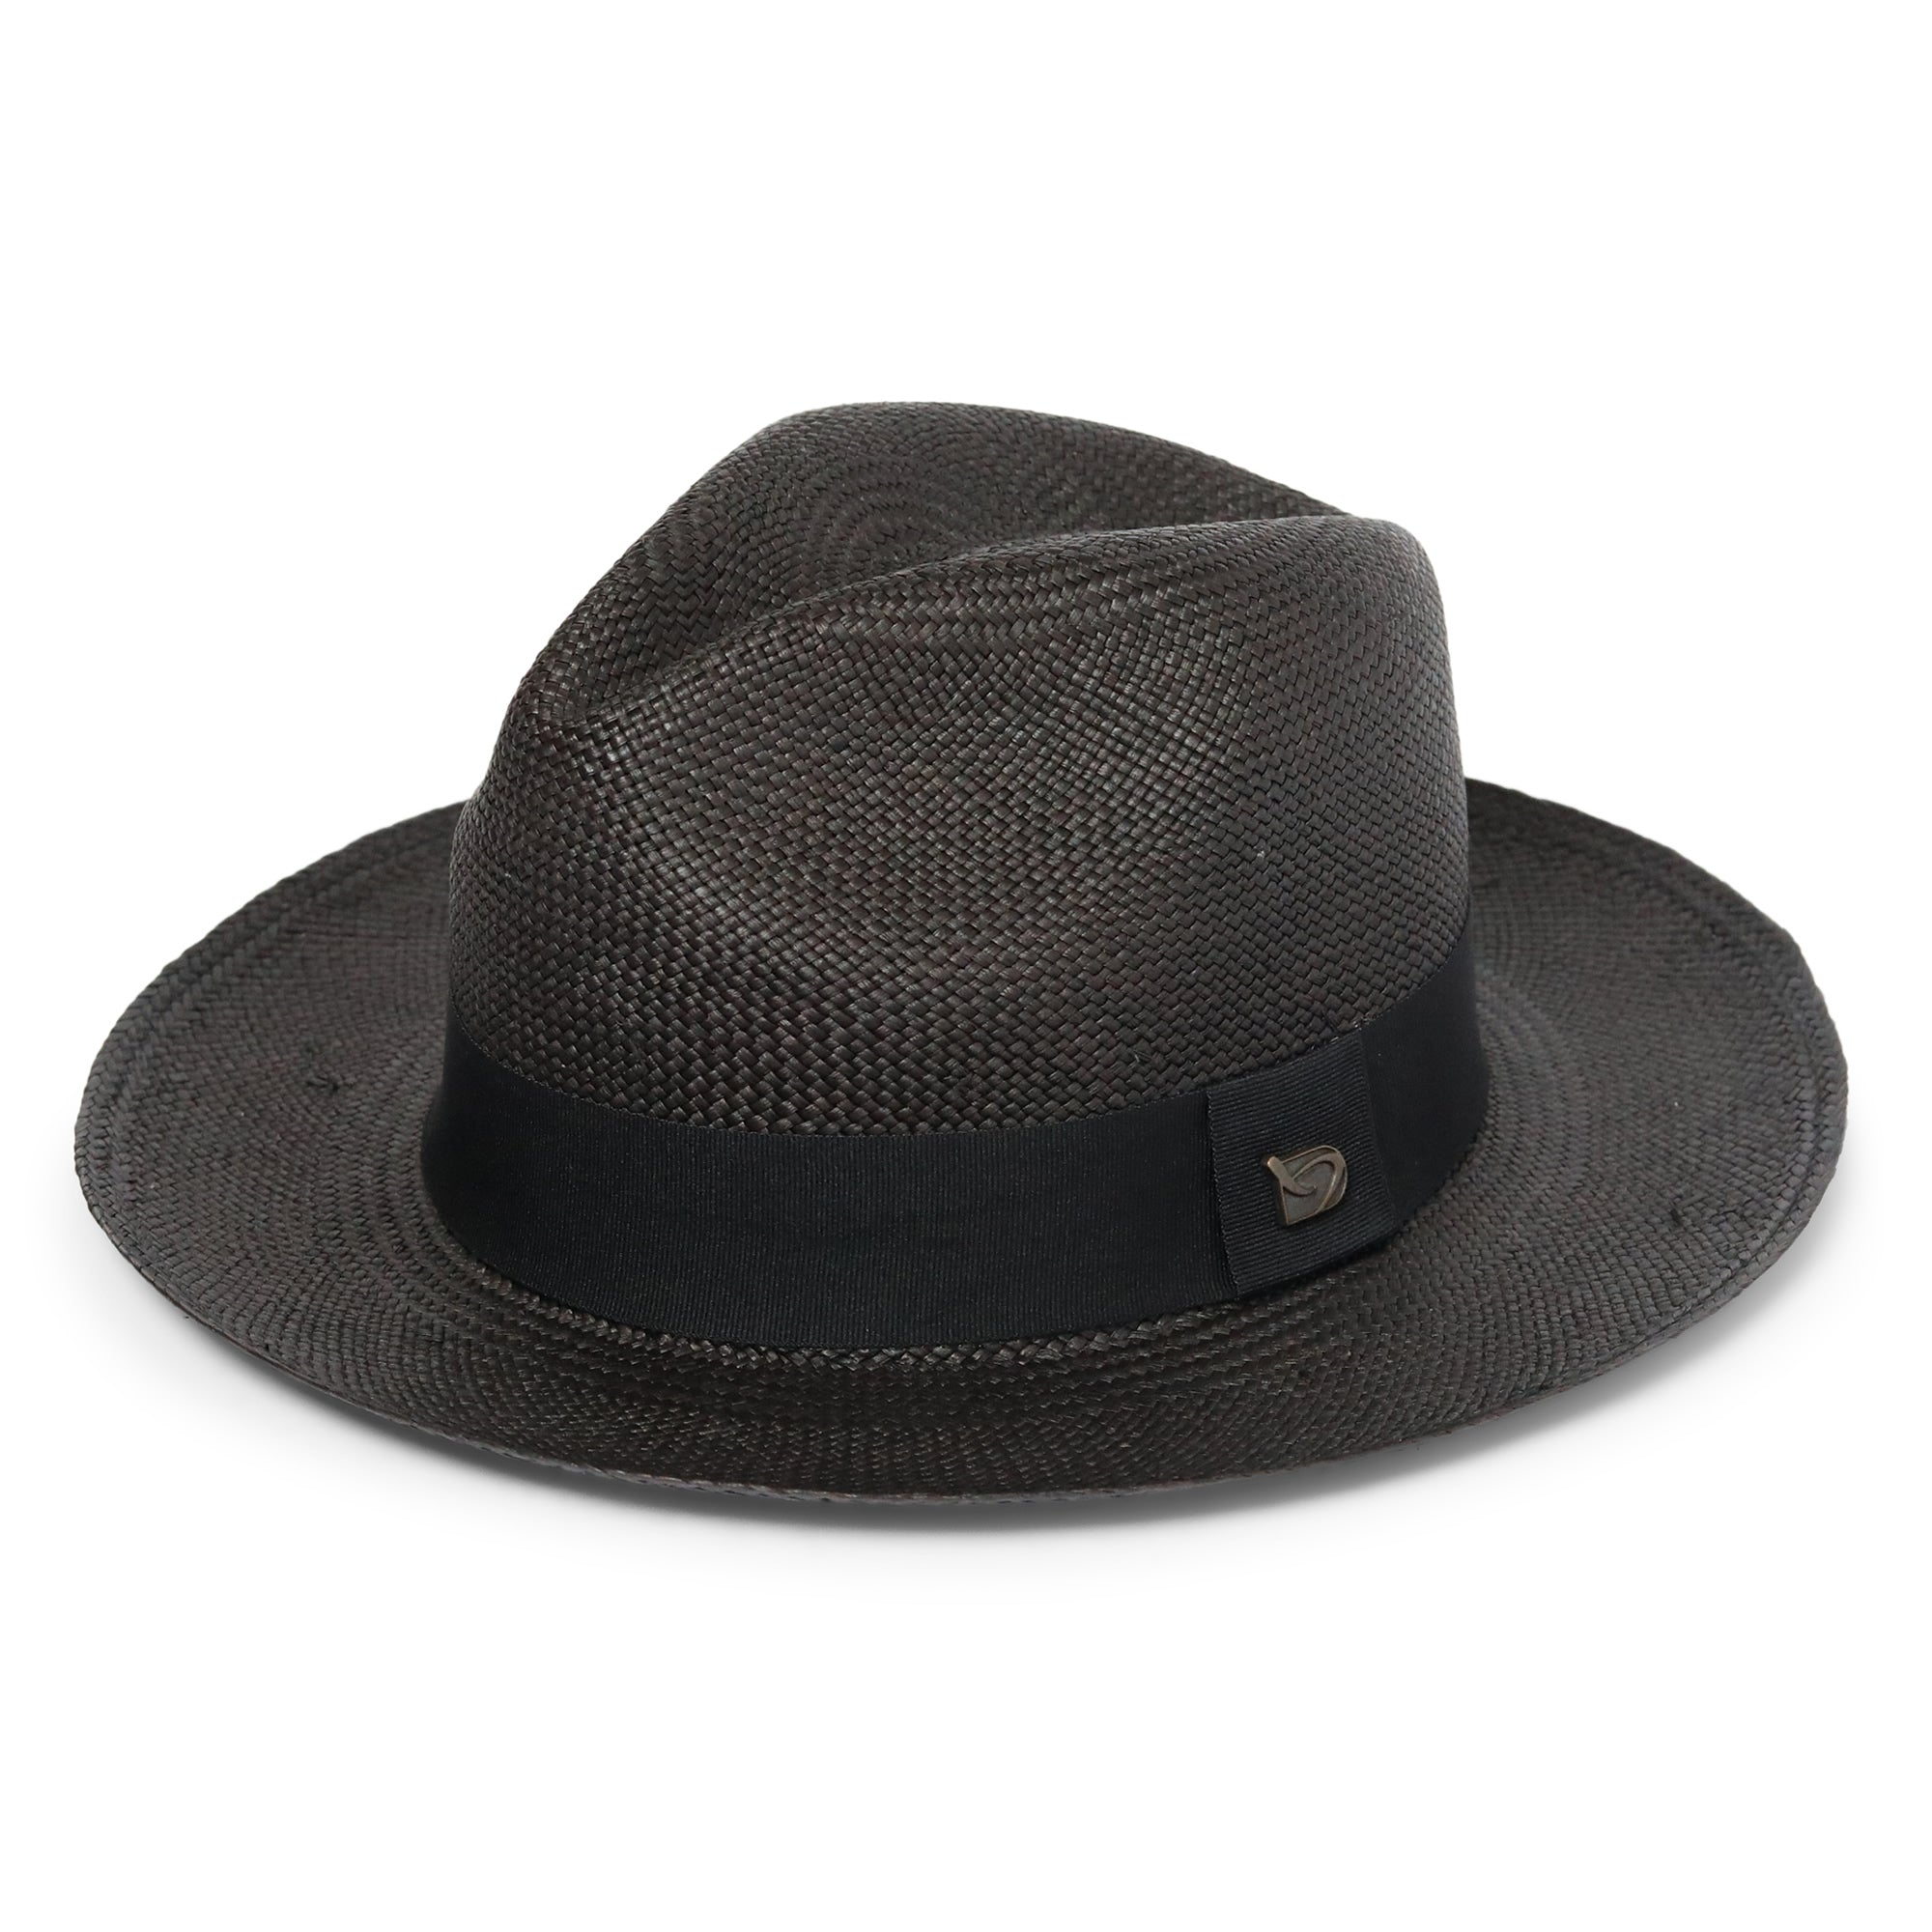 The Classic Black Panama Hat